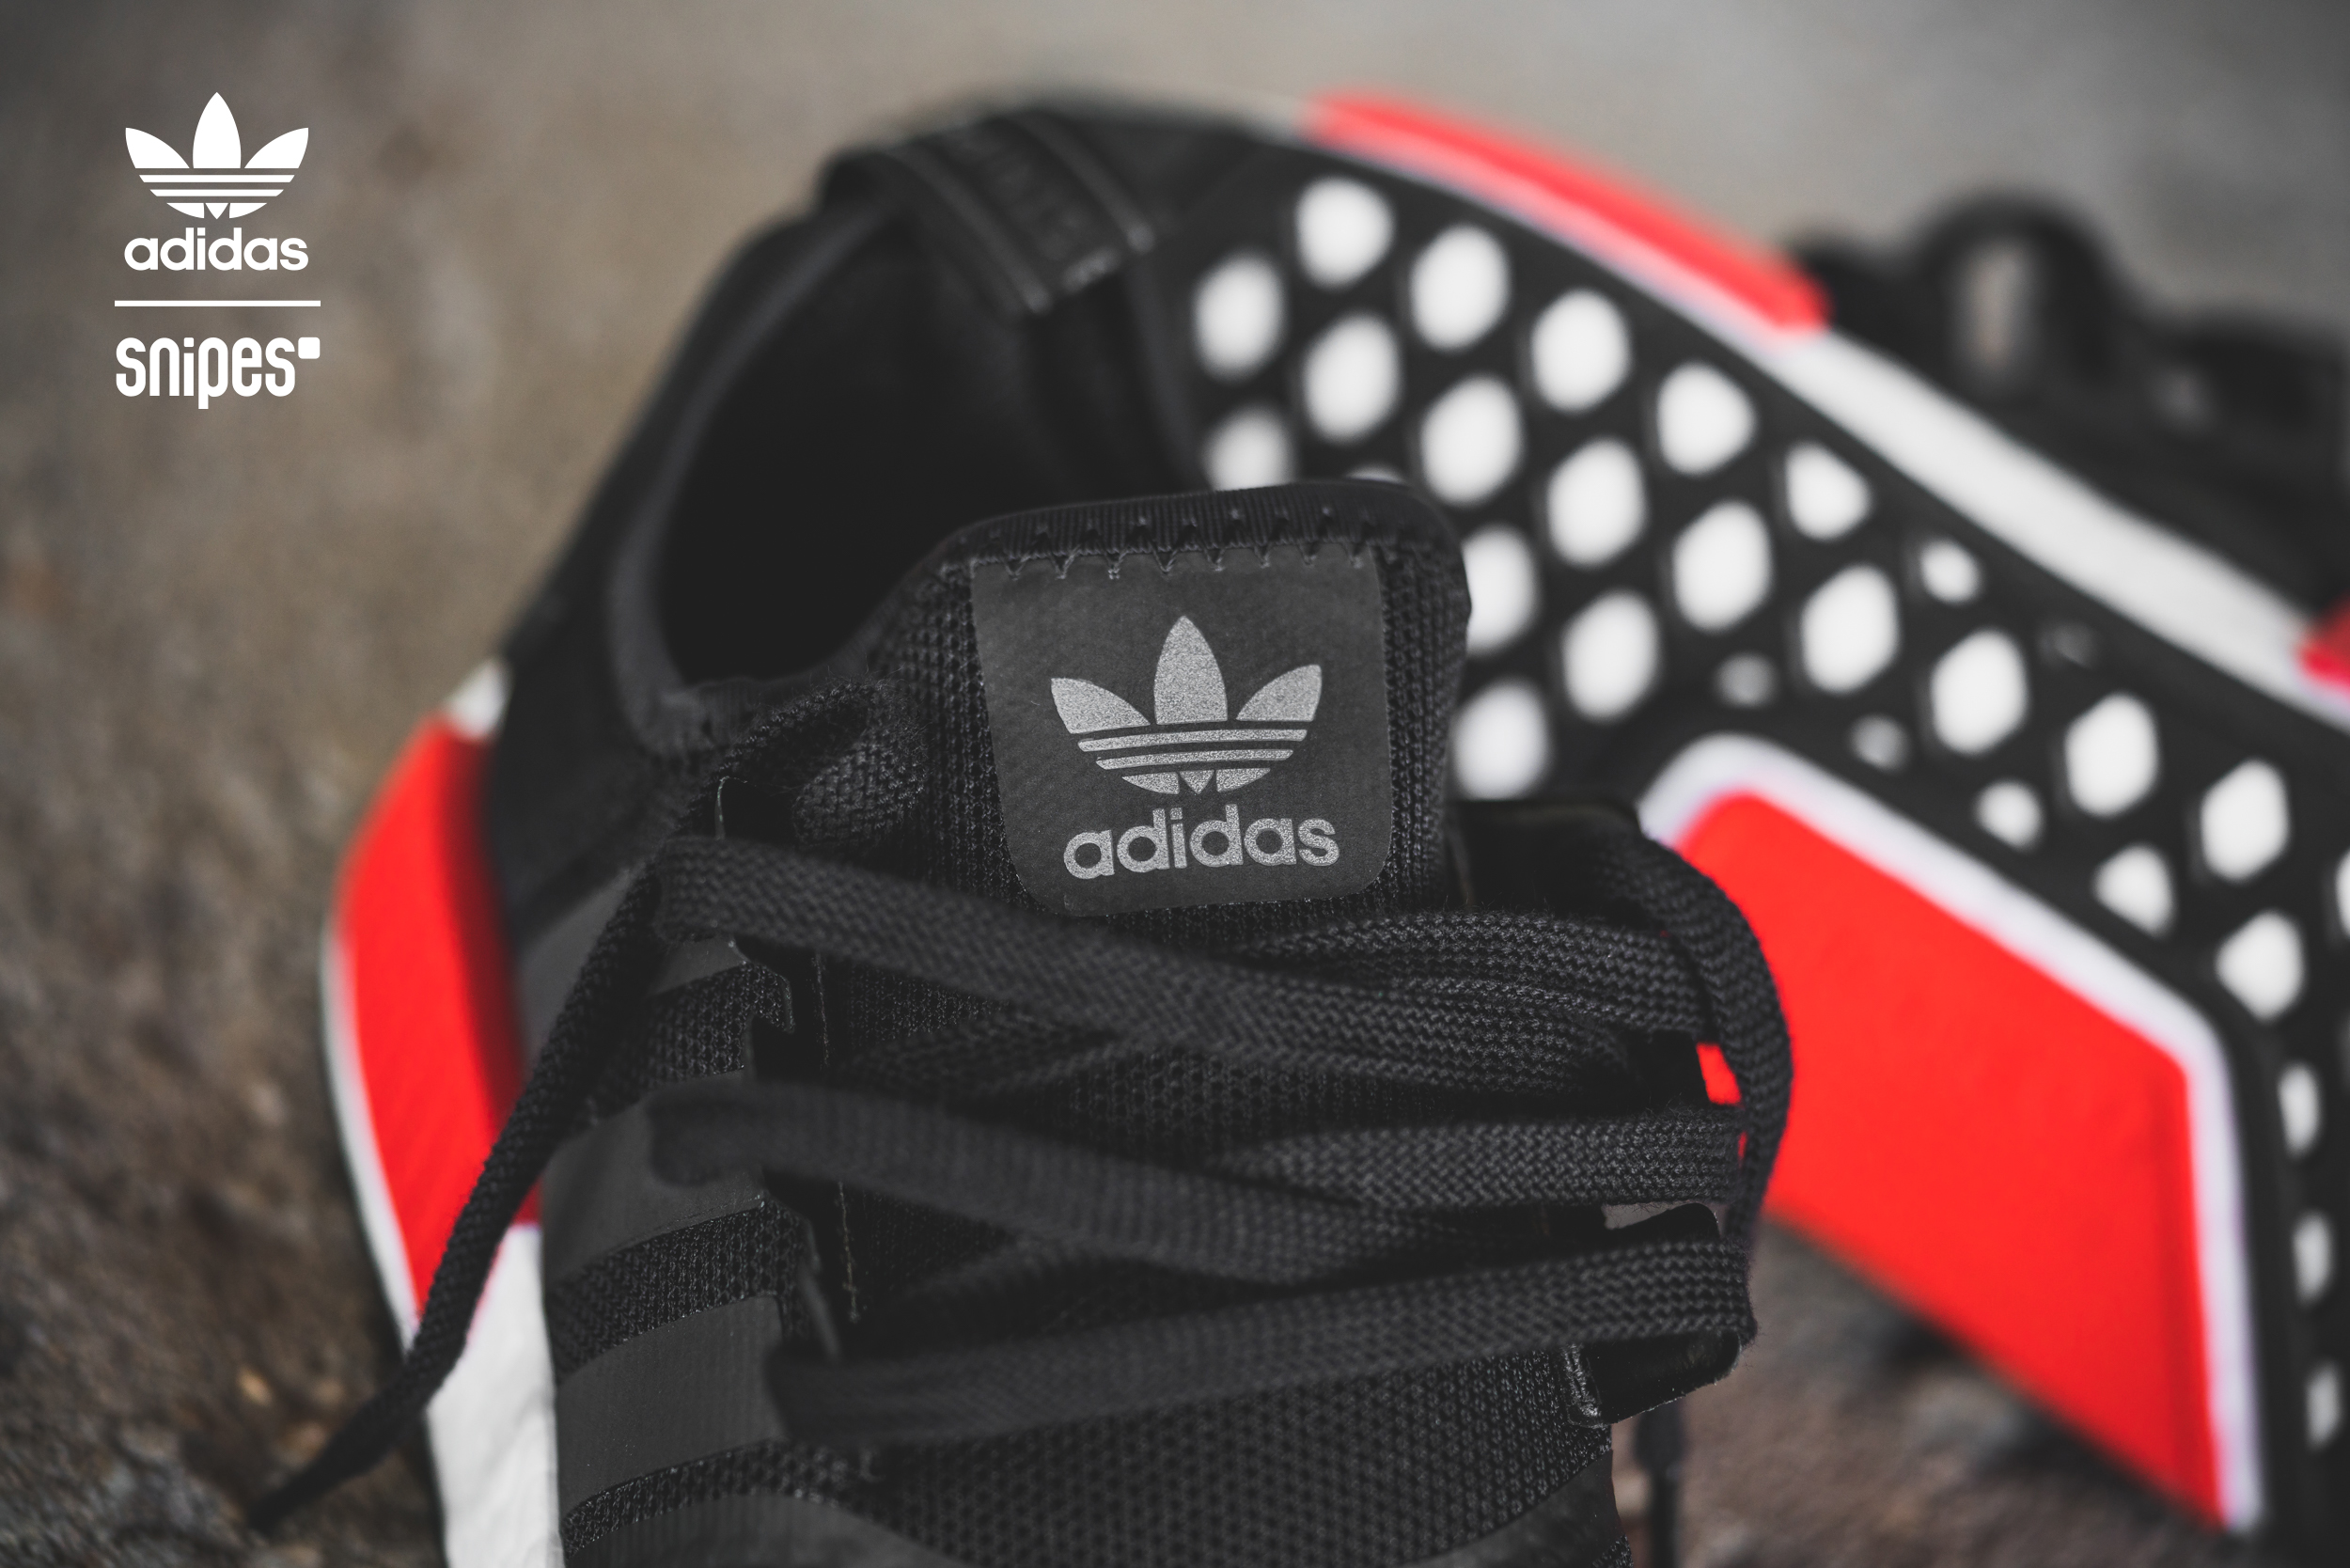 adidas_NMD_Runner_core_black-core_black-white_1013884-4